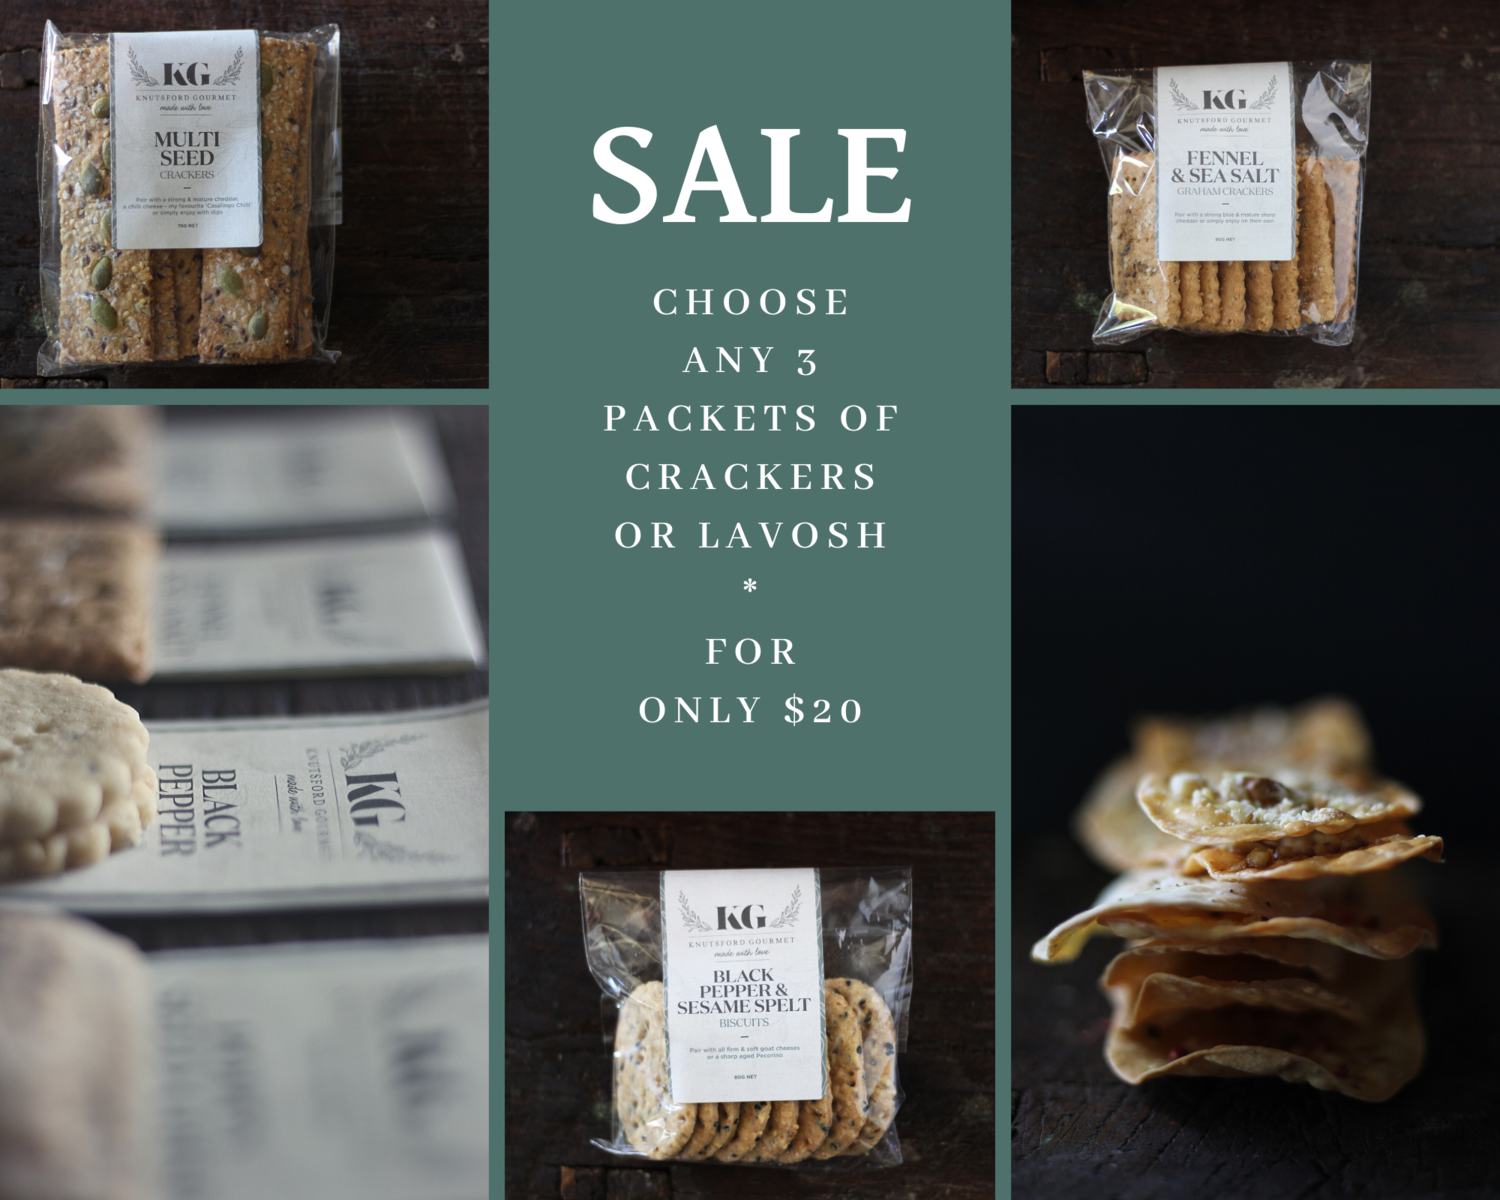 Any 4 Packets for $30